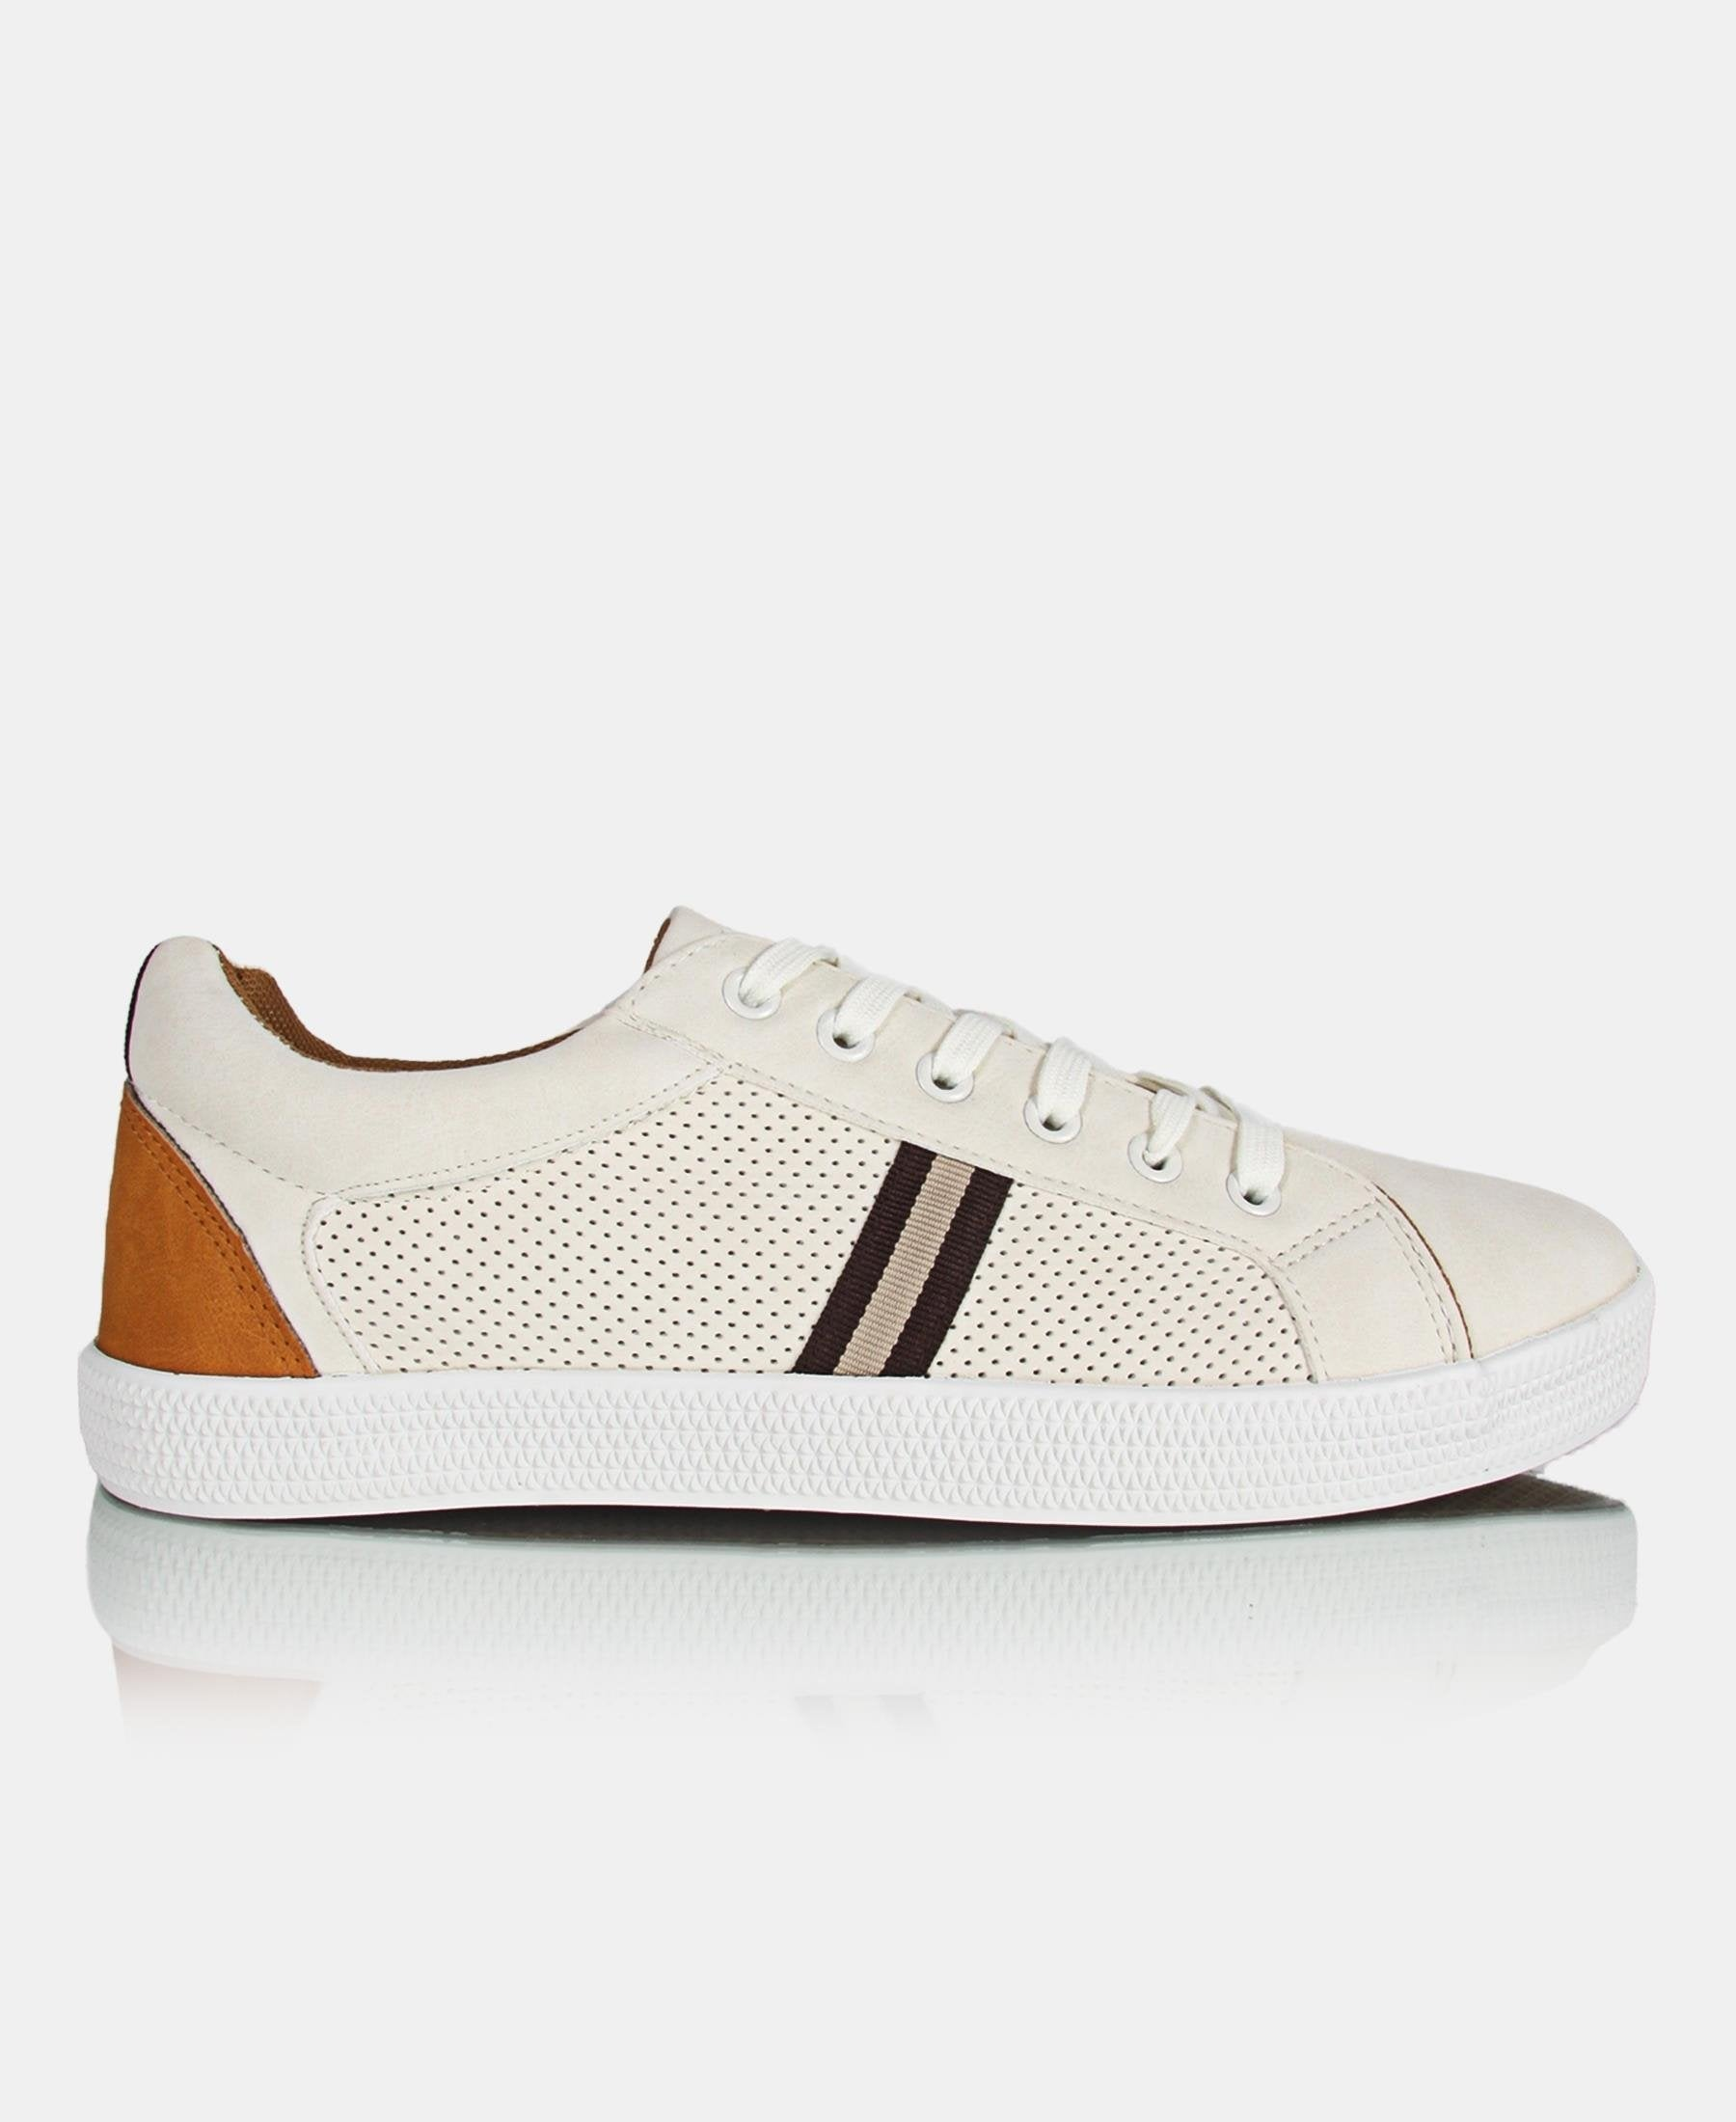 Men's Light Sneakers - Beige - planet54.com